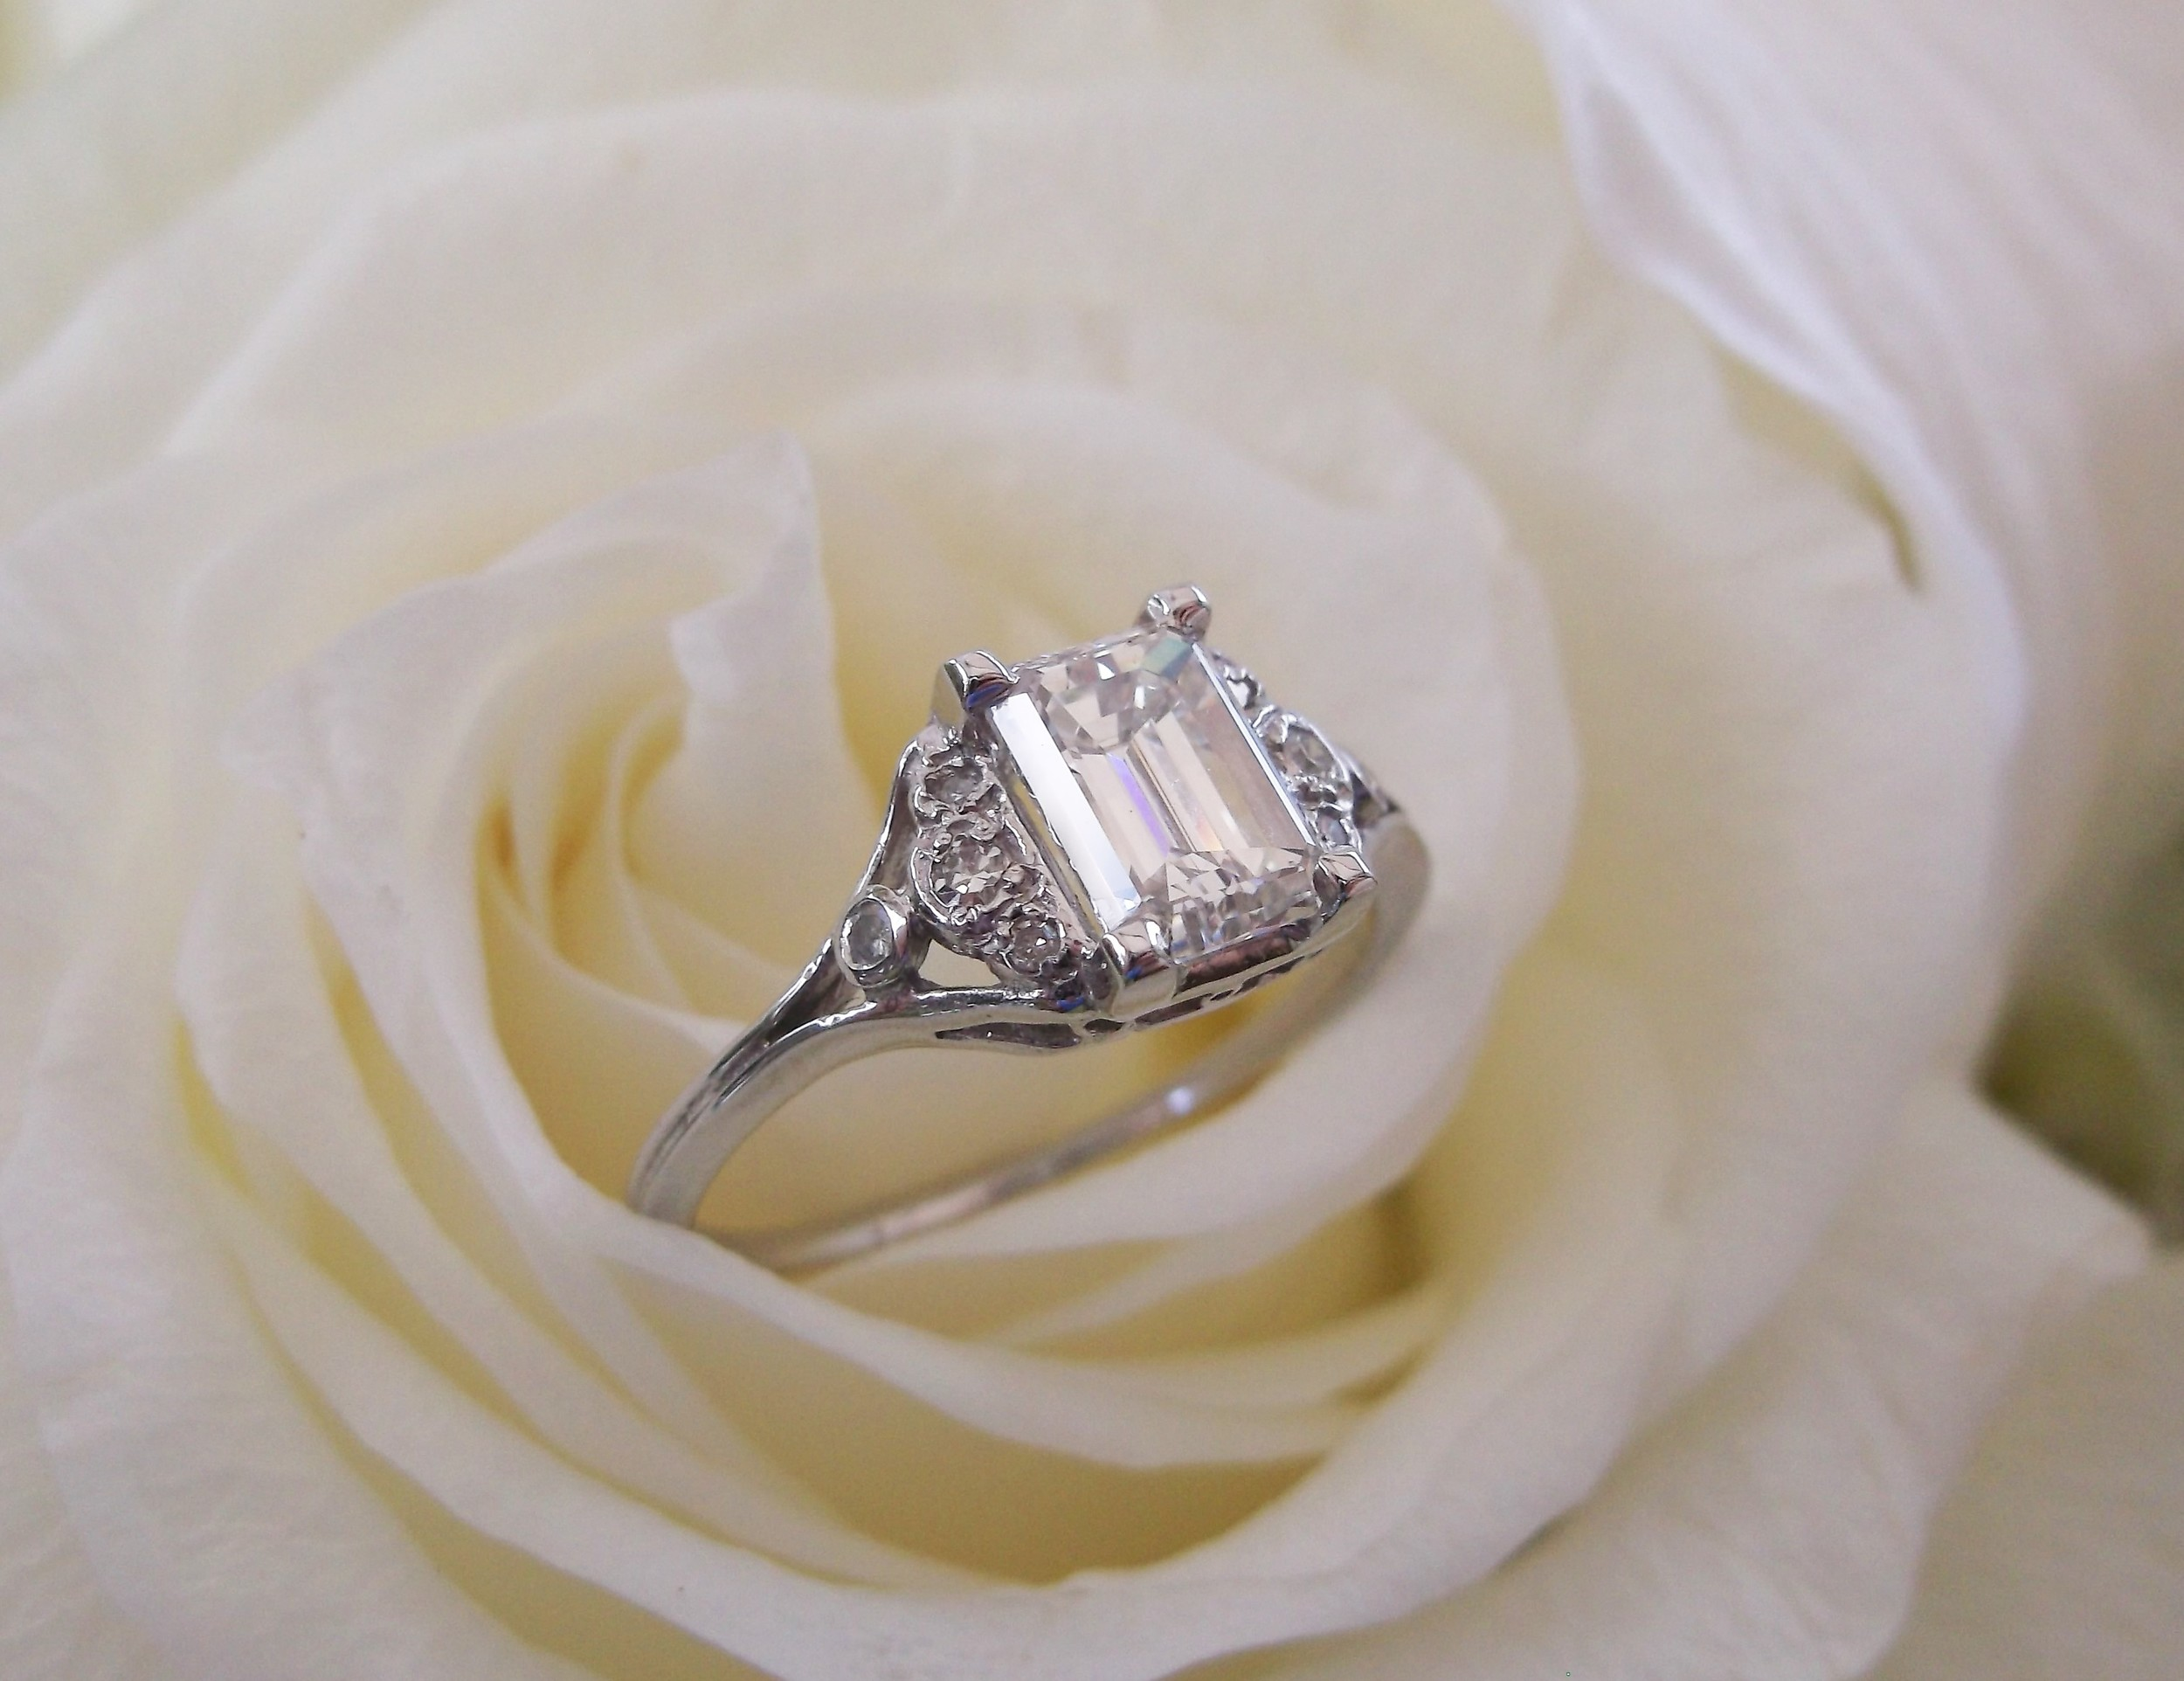 SOLD - Sophisticated 1.07 carat emerald cut diamond set in white gold with diamond detail on the sides from the 1920's.